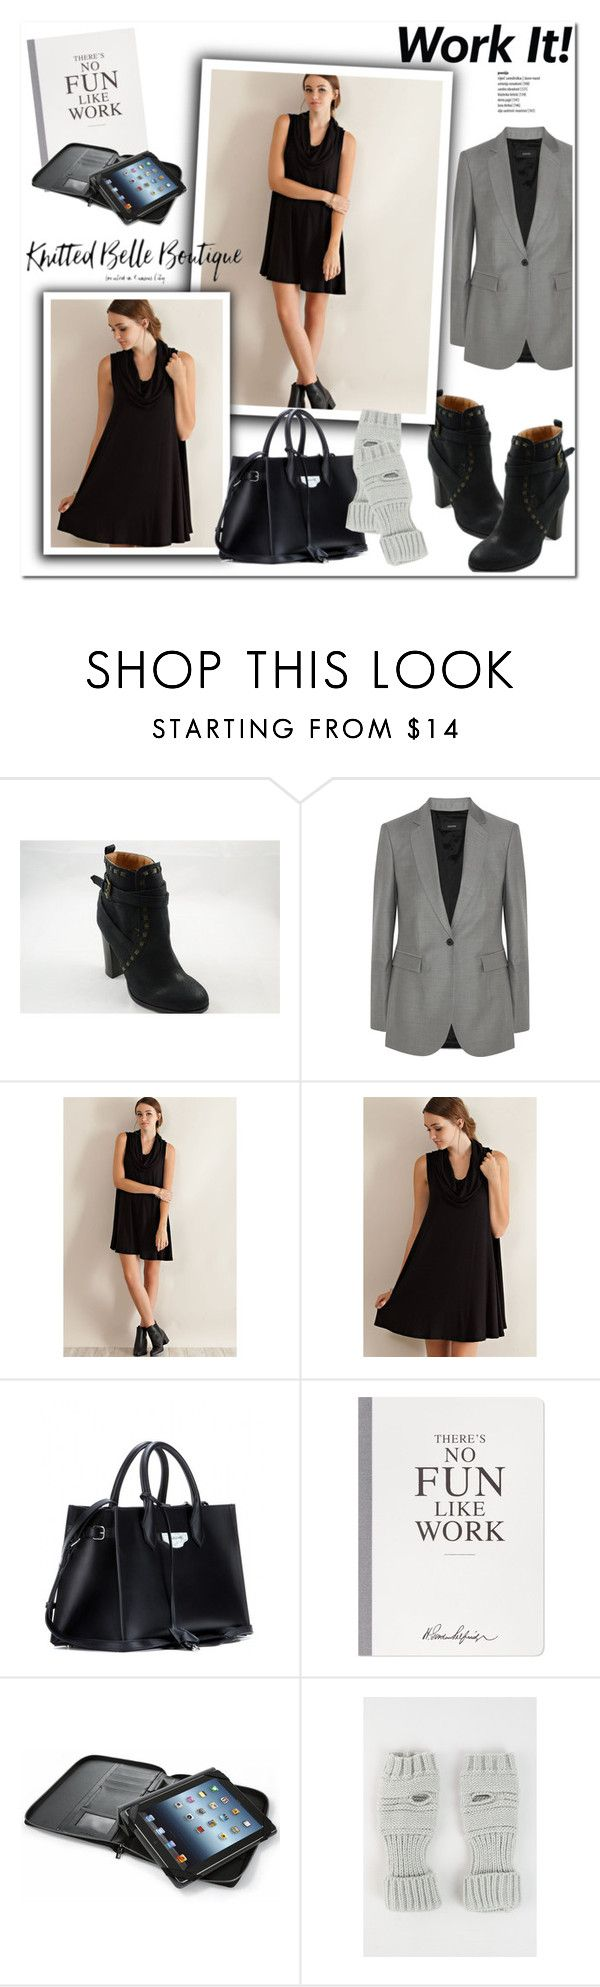 """Work in Style!"" by knittedbelleboutique ❤ liked on Polyvore featuring Joseph, Balenciaga, Selfridges, Folio, WorkWear, CasualChic and knittedbelleboutique"